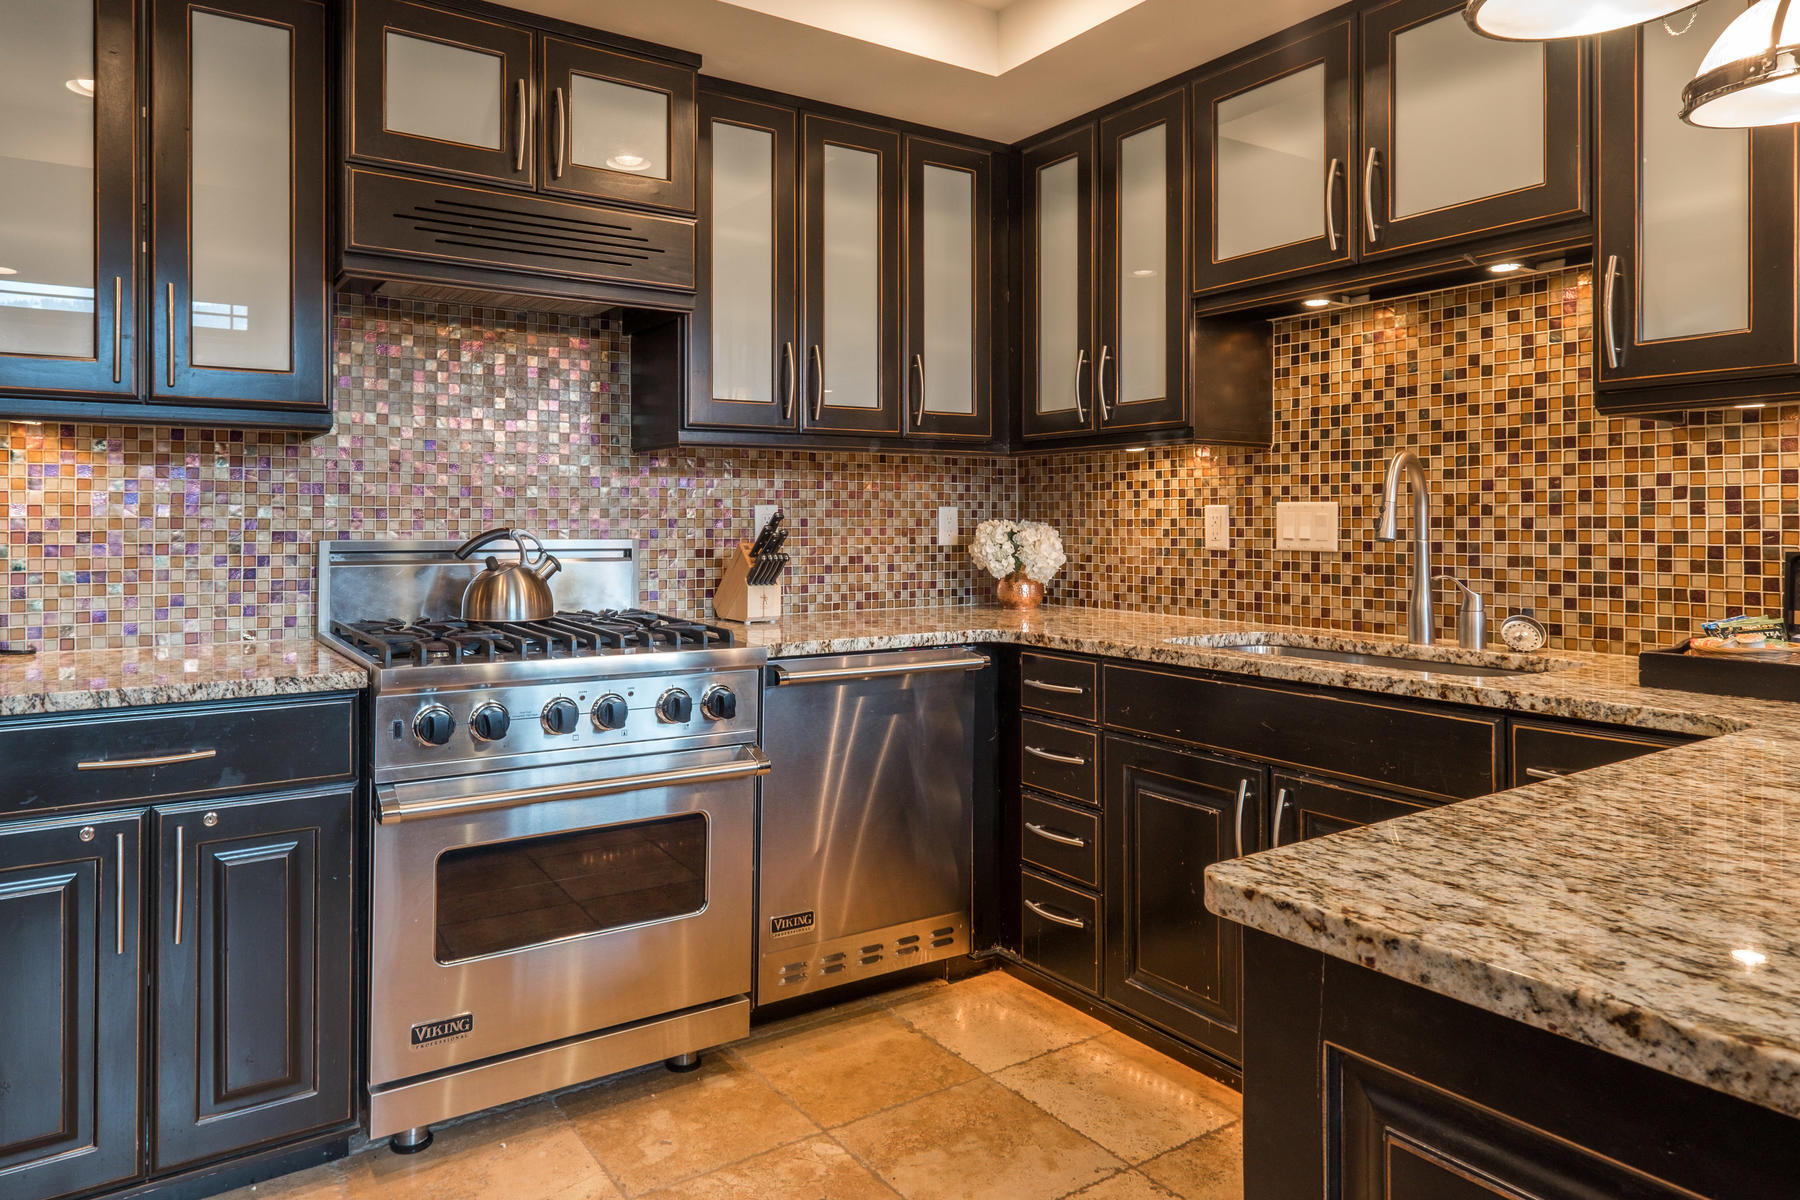 Additional photo for property listing at Waldorf Astoria Penthouse Residence with Spectacular Views 2100 Frostwood Blvd Unit 6177 Park City, Utah 84098 United States